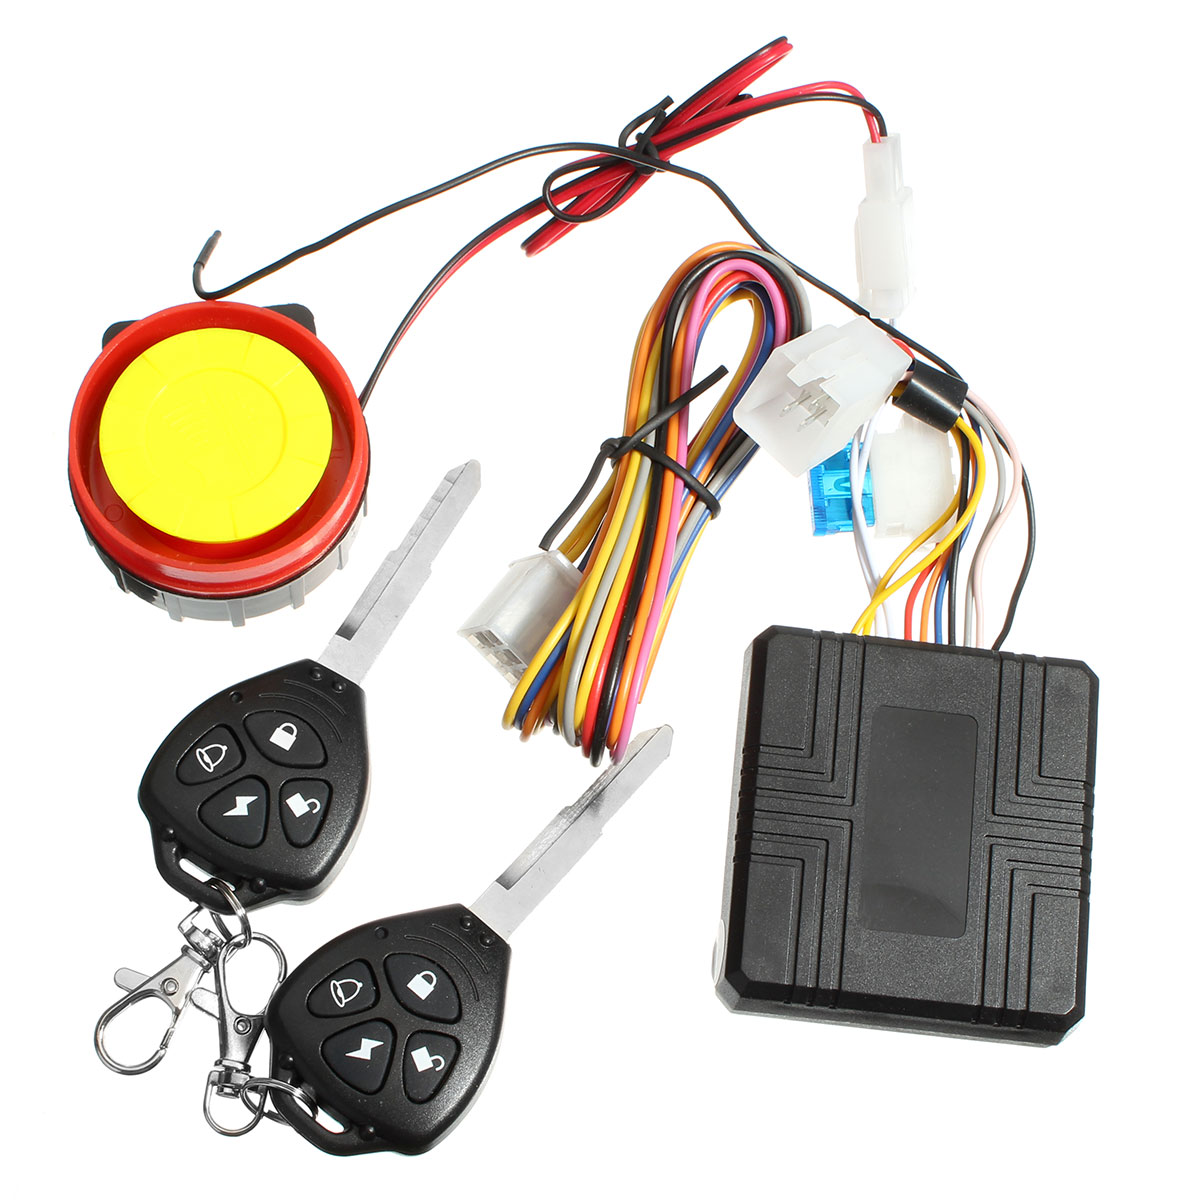 Theft Protection Remote Activation Motorbike Alarm Accessories motorcycle Remote Control + key